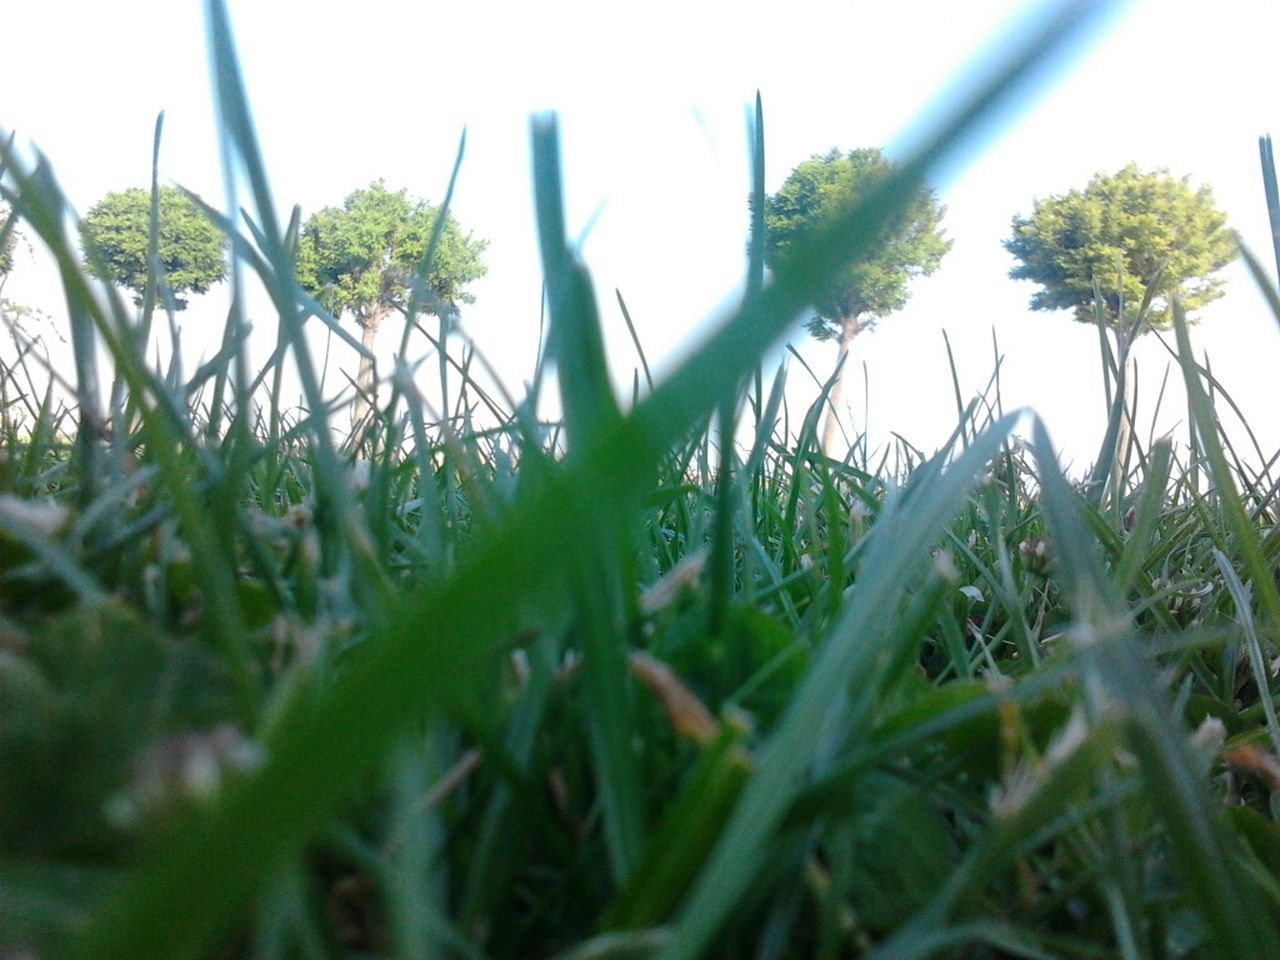 growth, grass, plant, nature, selective focus, green color, field, no people, beauty in nature, flower, day, outdoors, close-up, freshness, sky, fragility, snowdrop